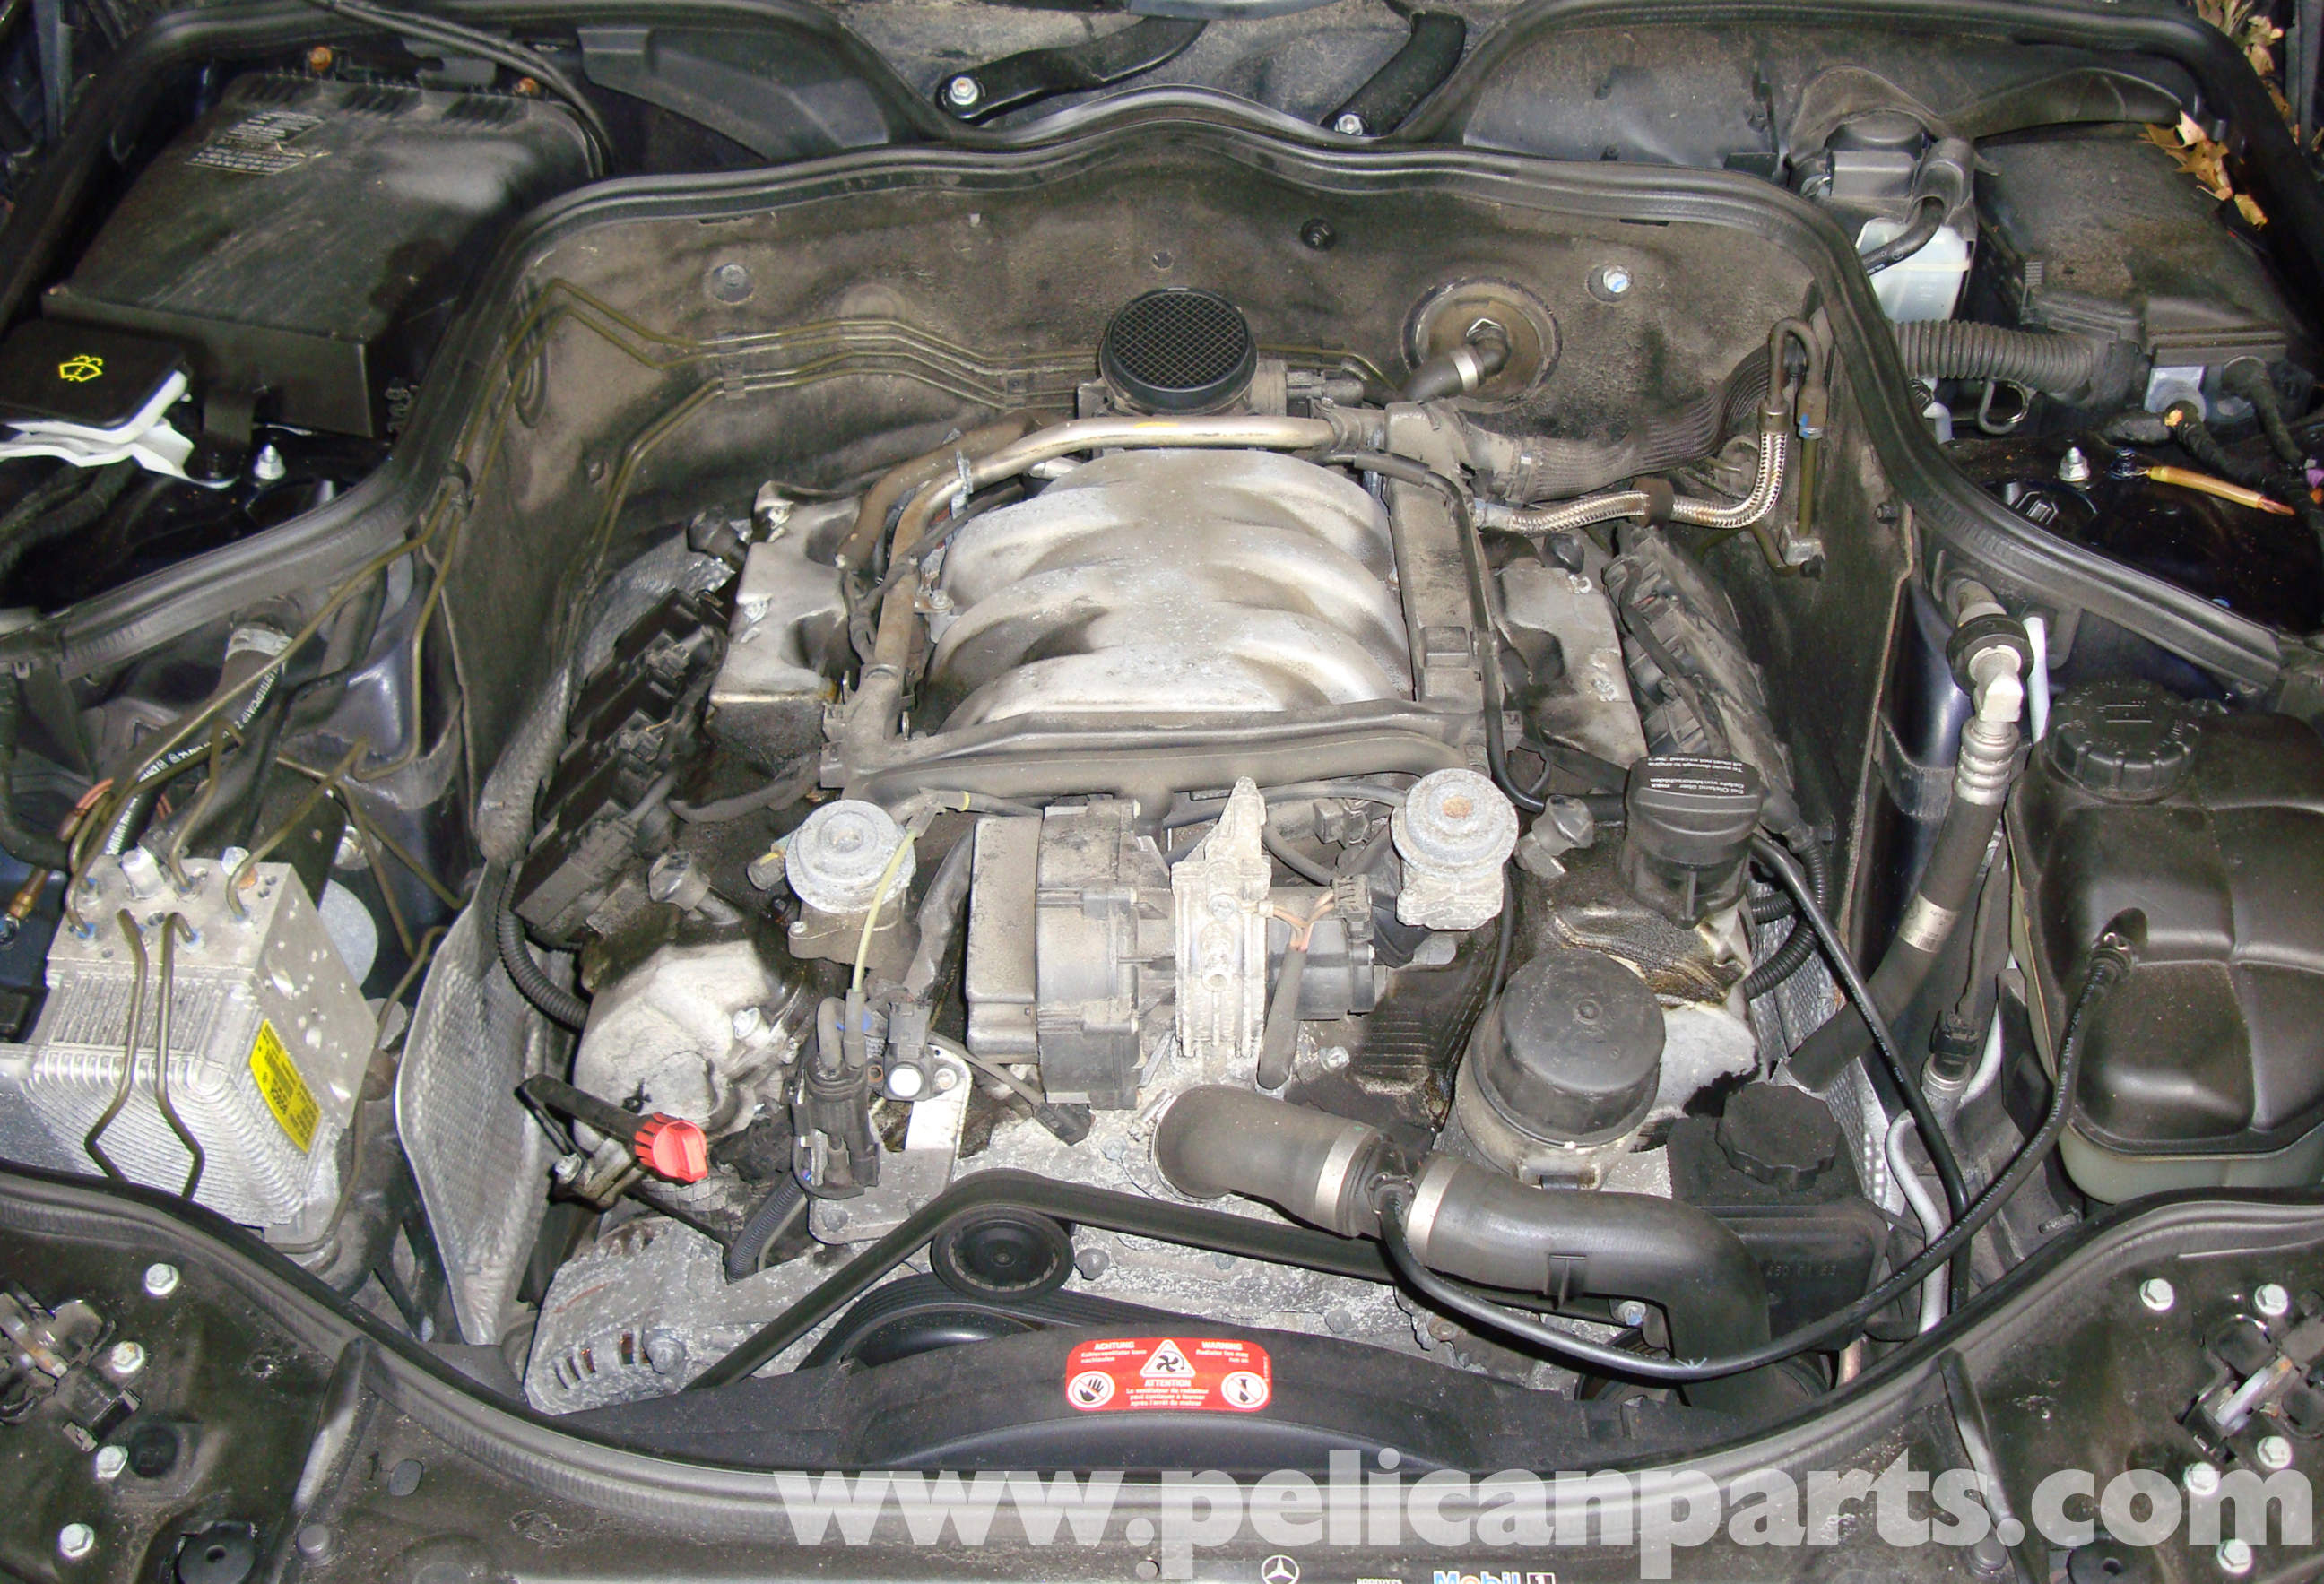 Mercedes benz w211 engine management systems 2003 2009 for Mercedes benz fuel injector problems